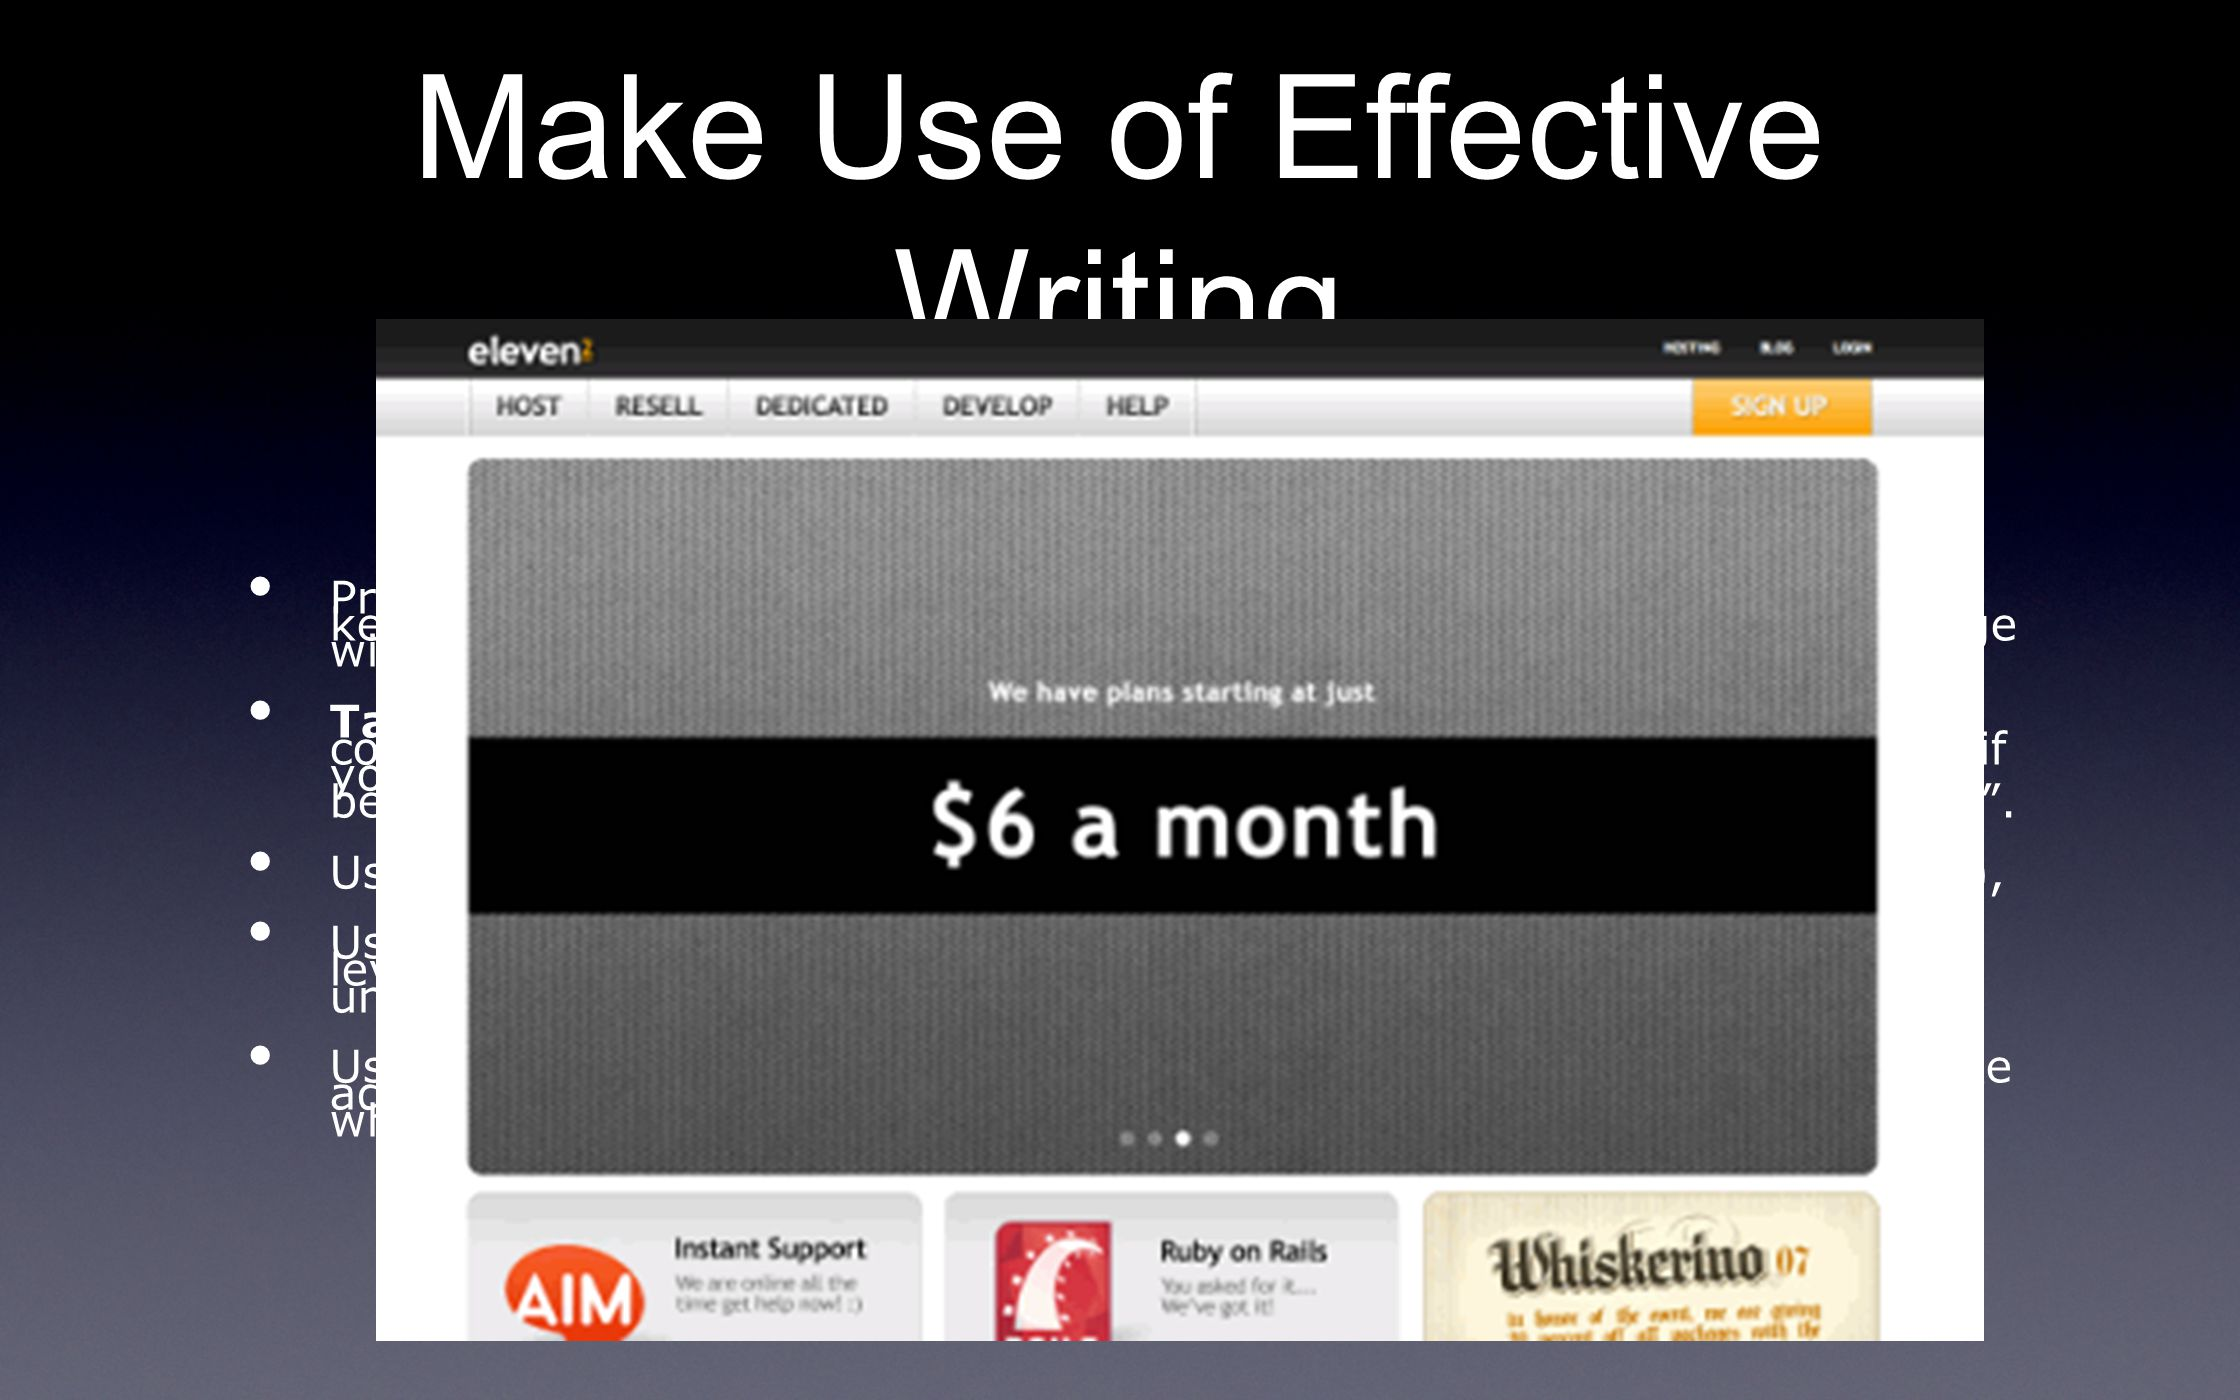 Make Use of Effective Writing Promotional writing won't be read. Long text blocks without images and keywords marked in bold or italics will be skippe